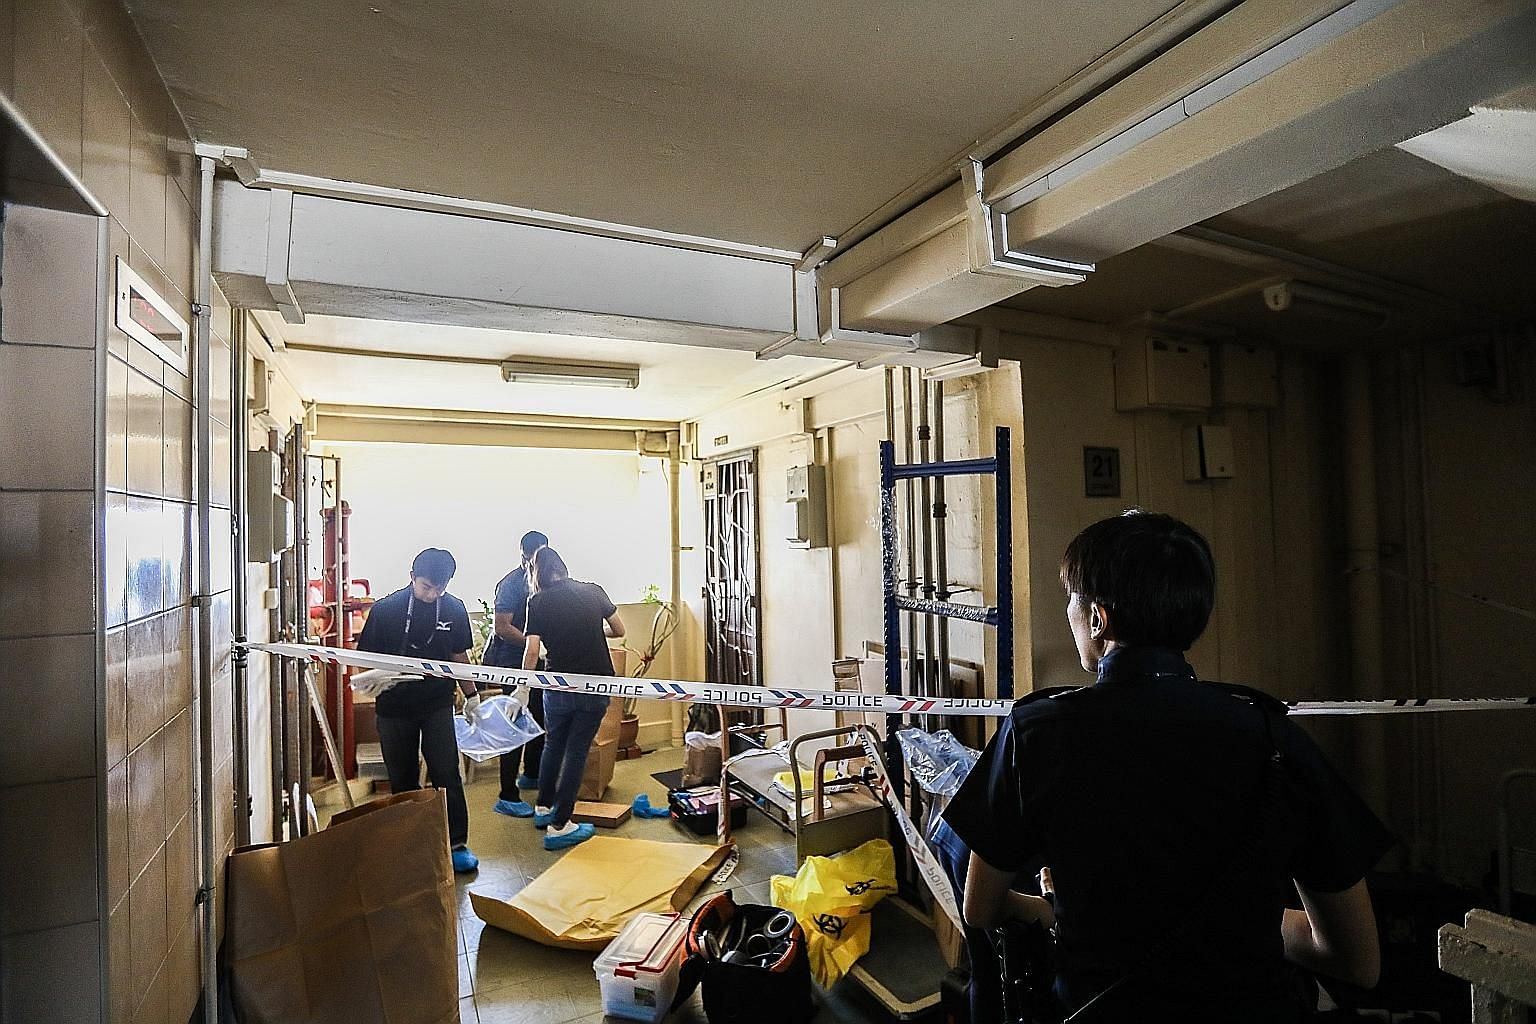 Police officers gathering evidence from inside the unit at Block 191 Lorong 4 Toa Payoh yesterday morning.